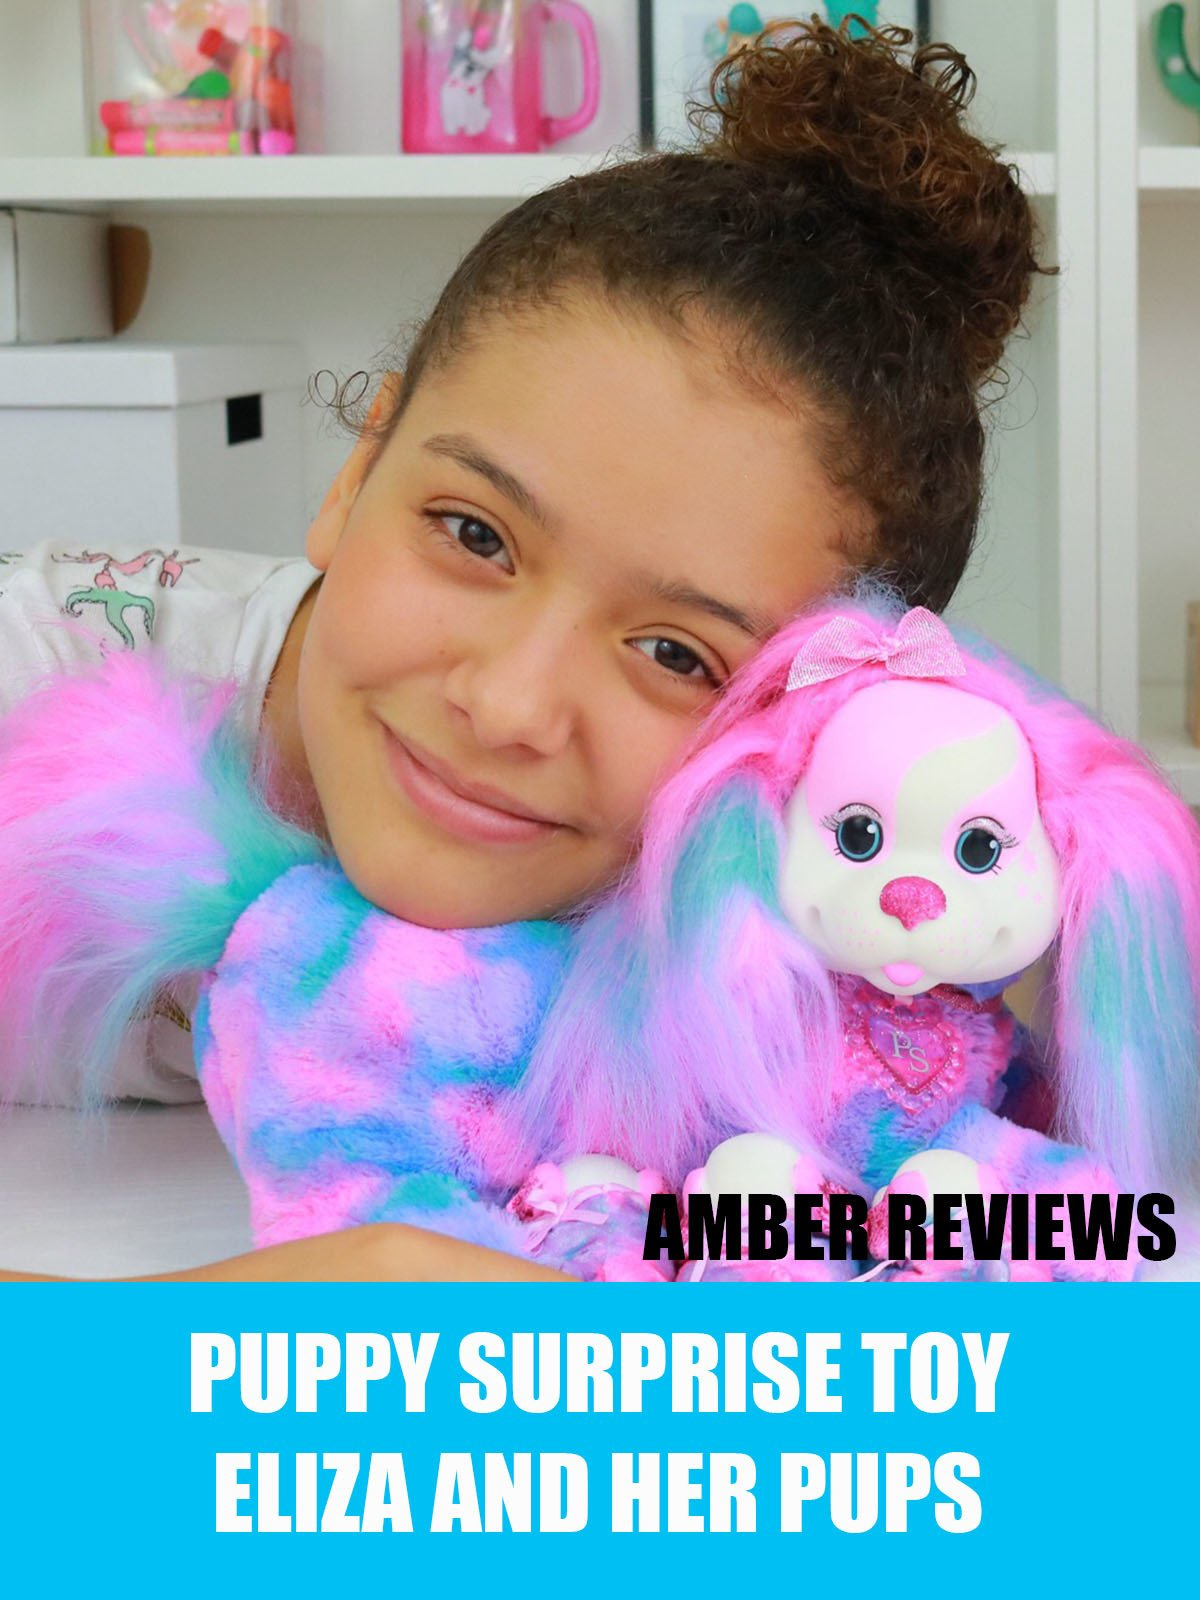 Amber Reviews Puppy Surprise Toy Eliza and Her Pups